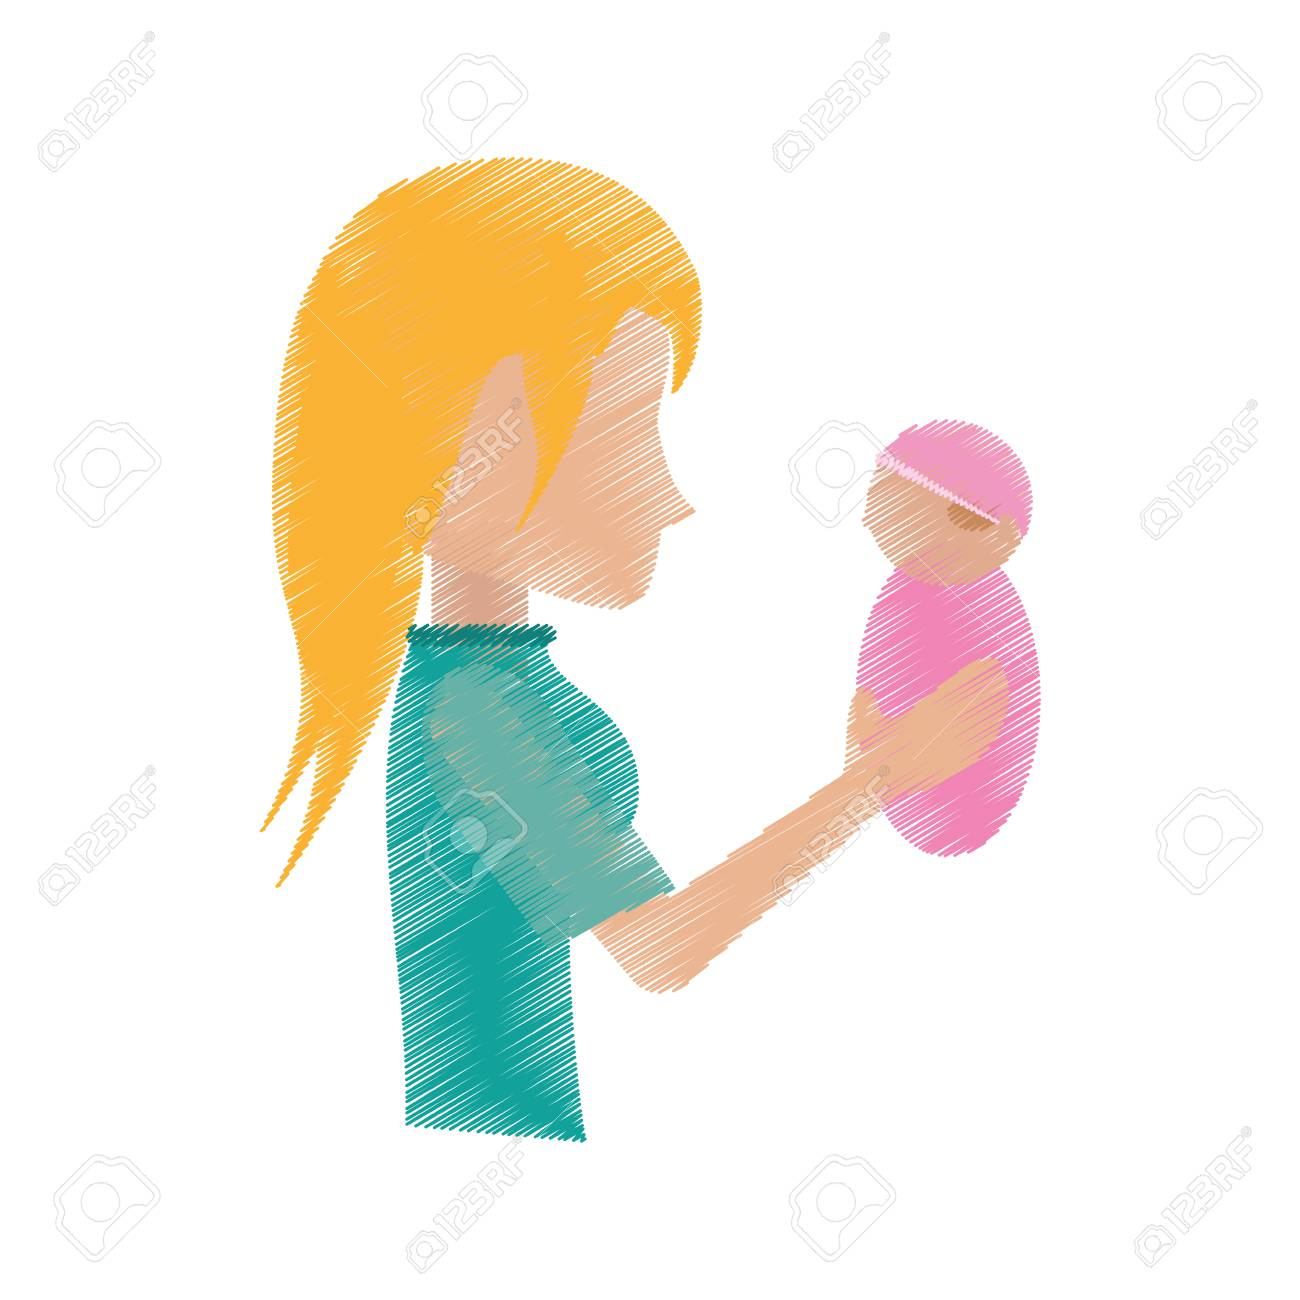 1300x1300 Drawing Mother Holding Baby Image Vector Illustration Eps 10